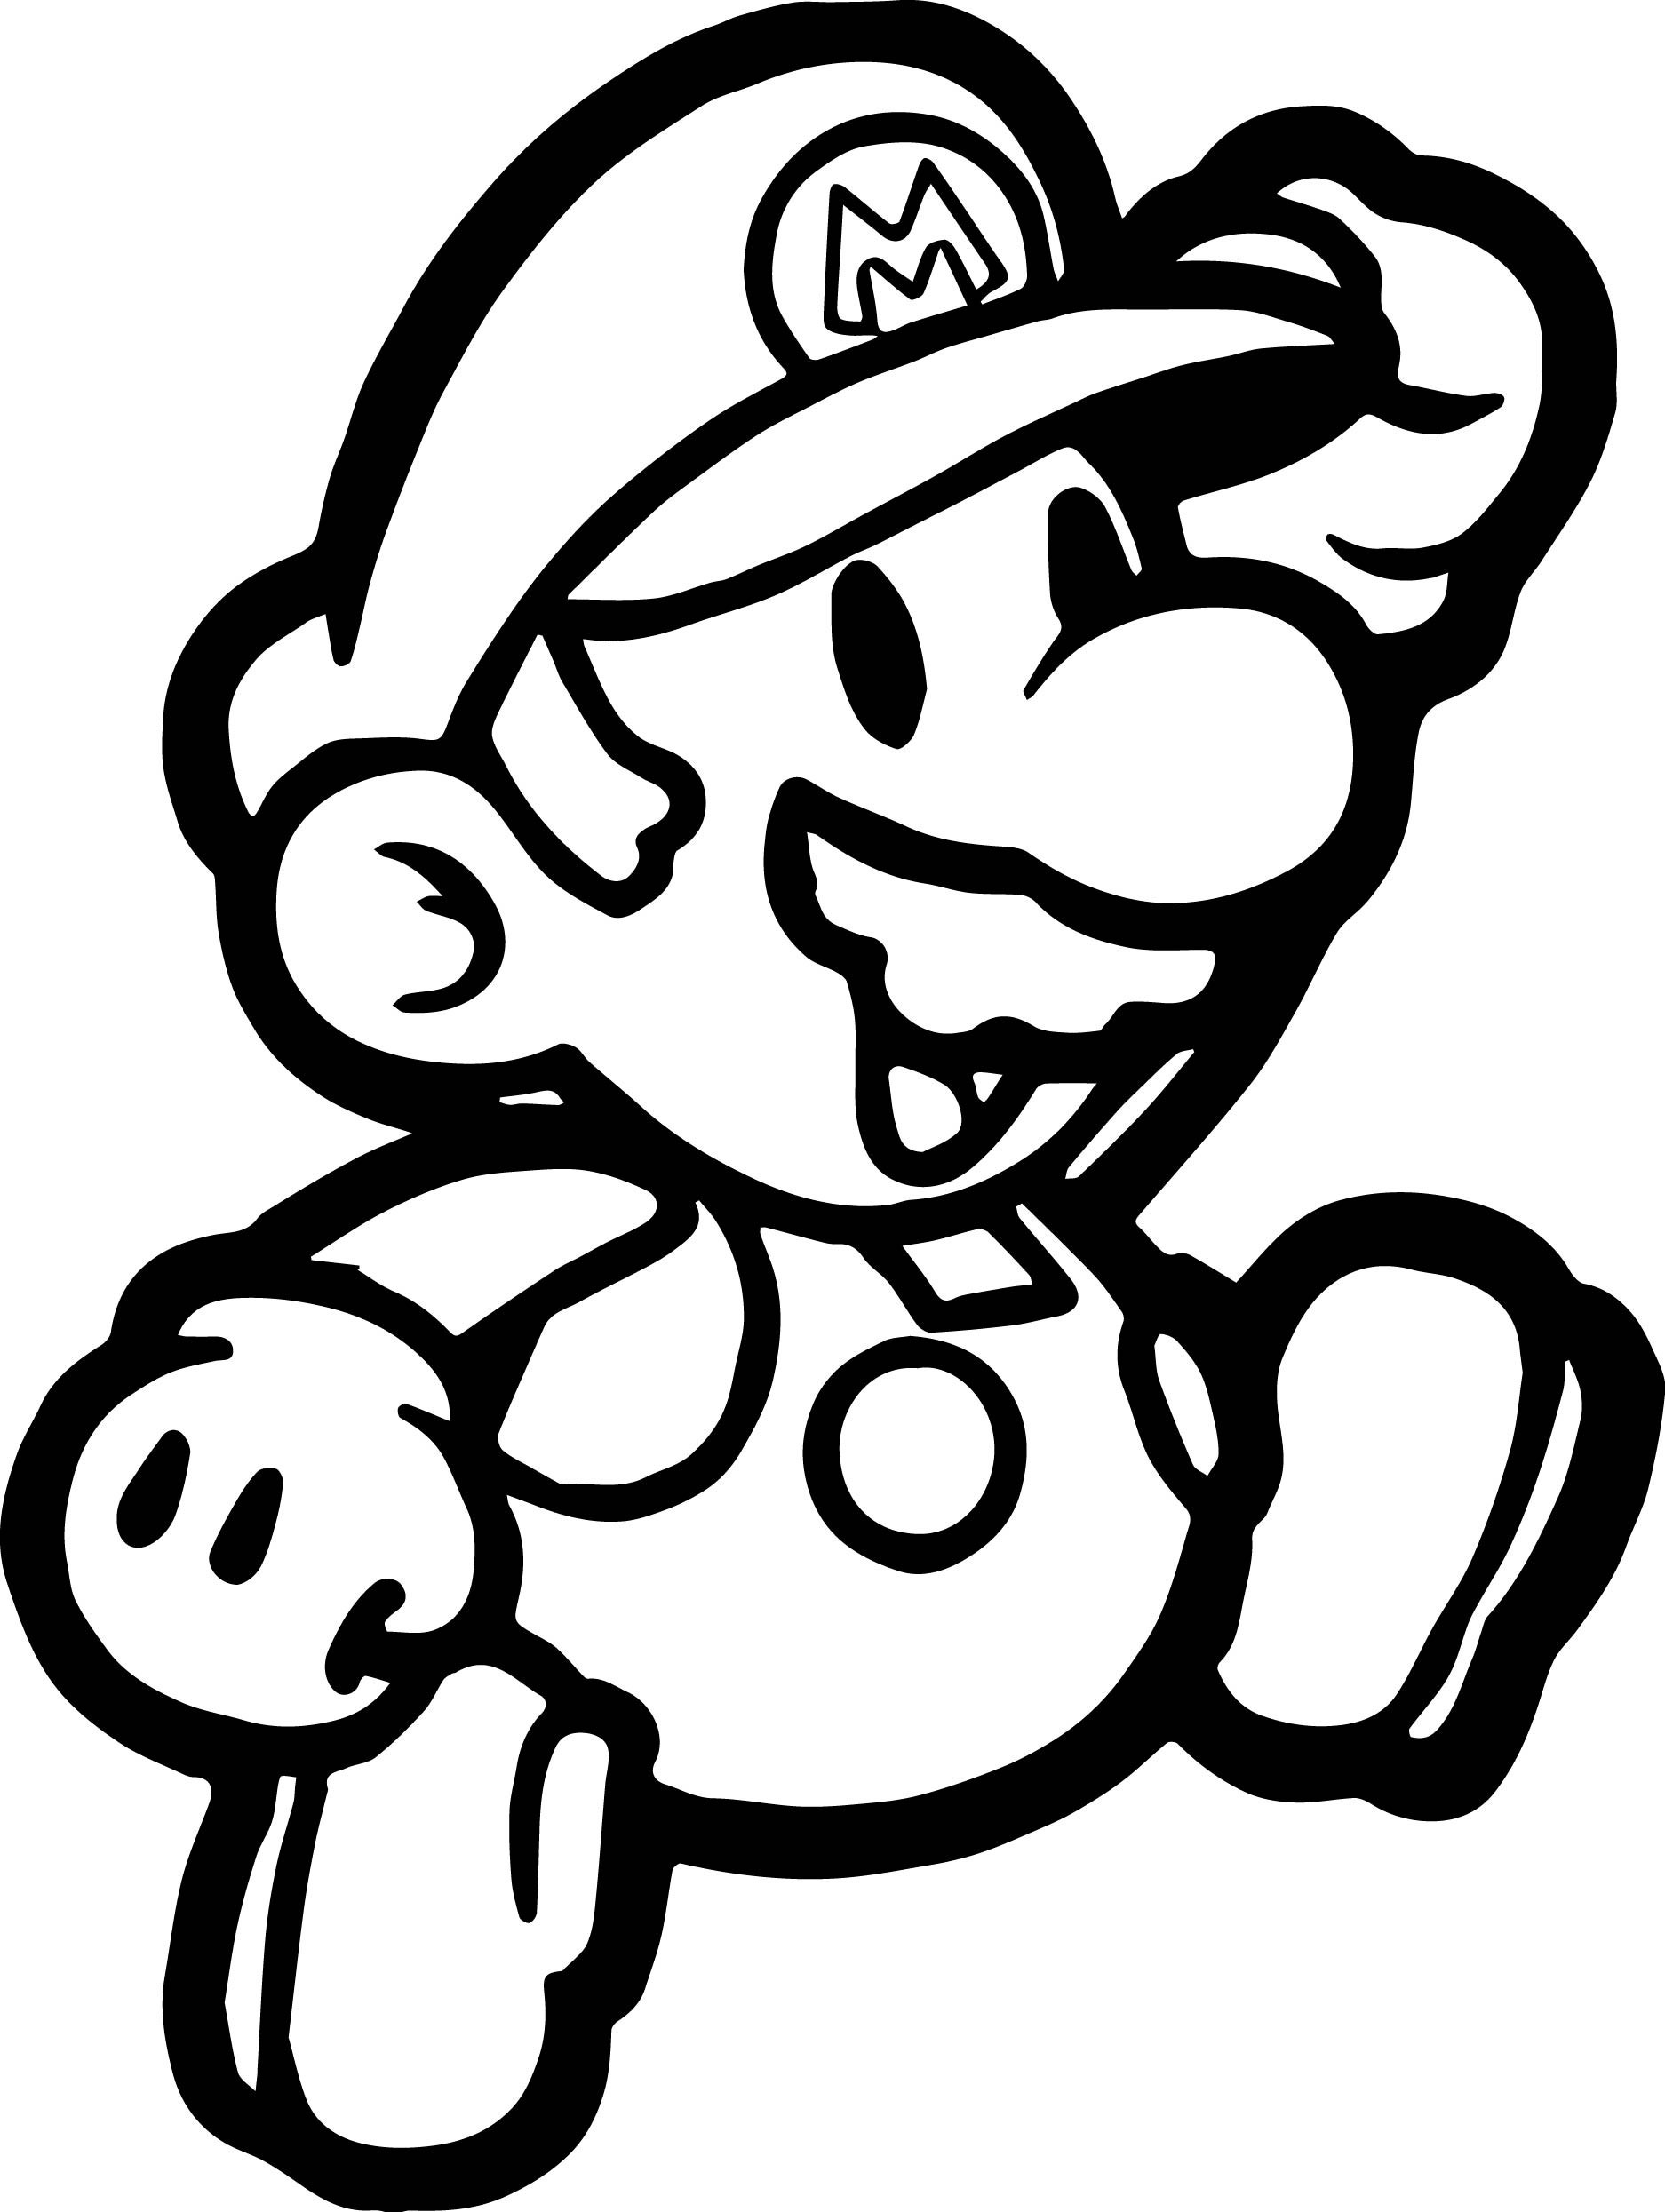 super mario 64 coloring pages free coloring page for children and adult super mario coloring mario super 64 pages